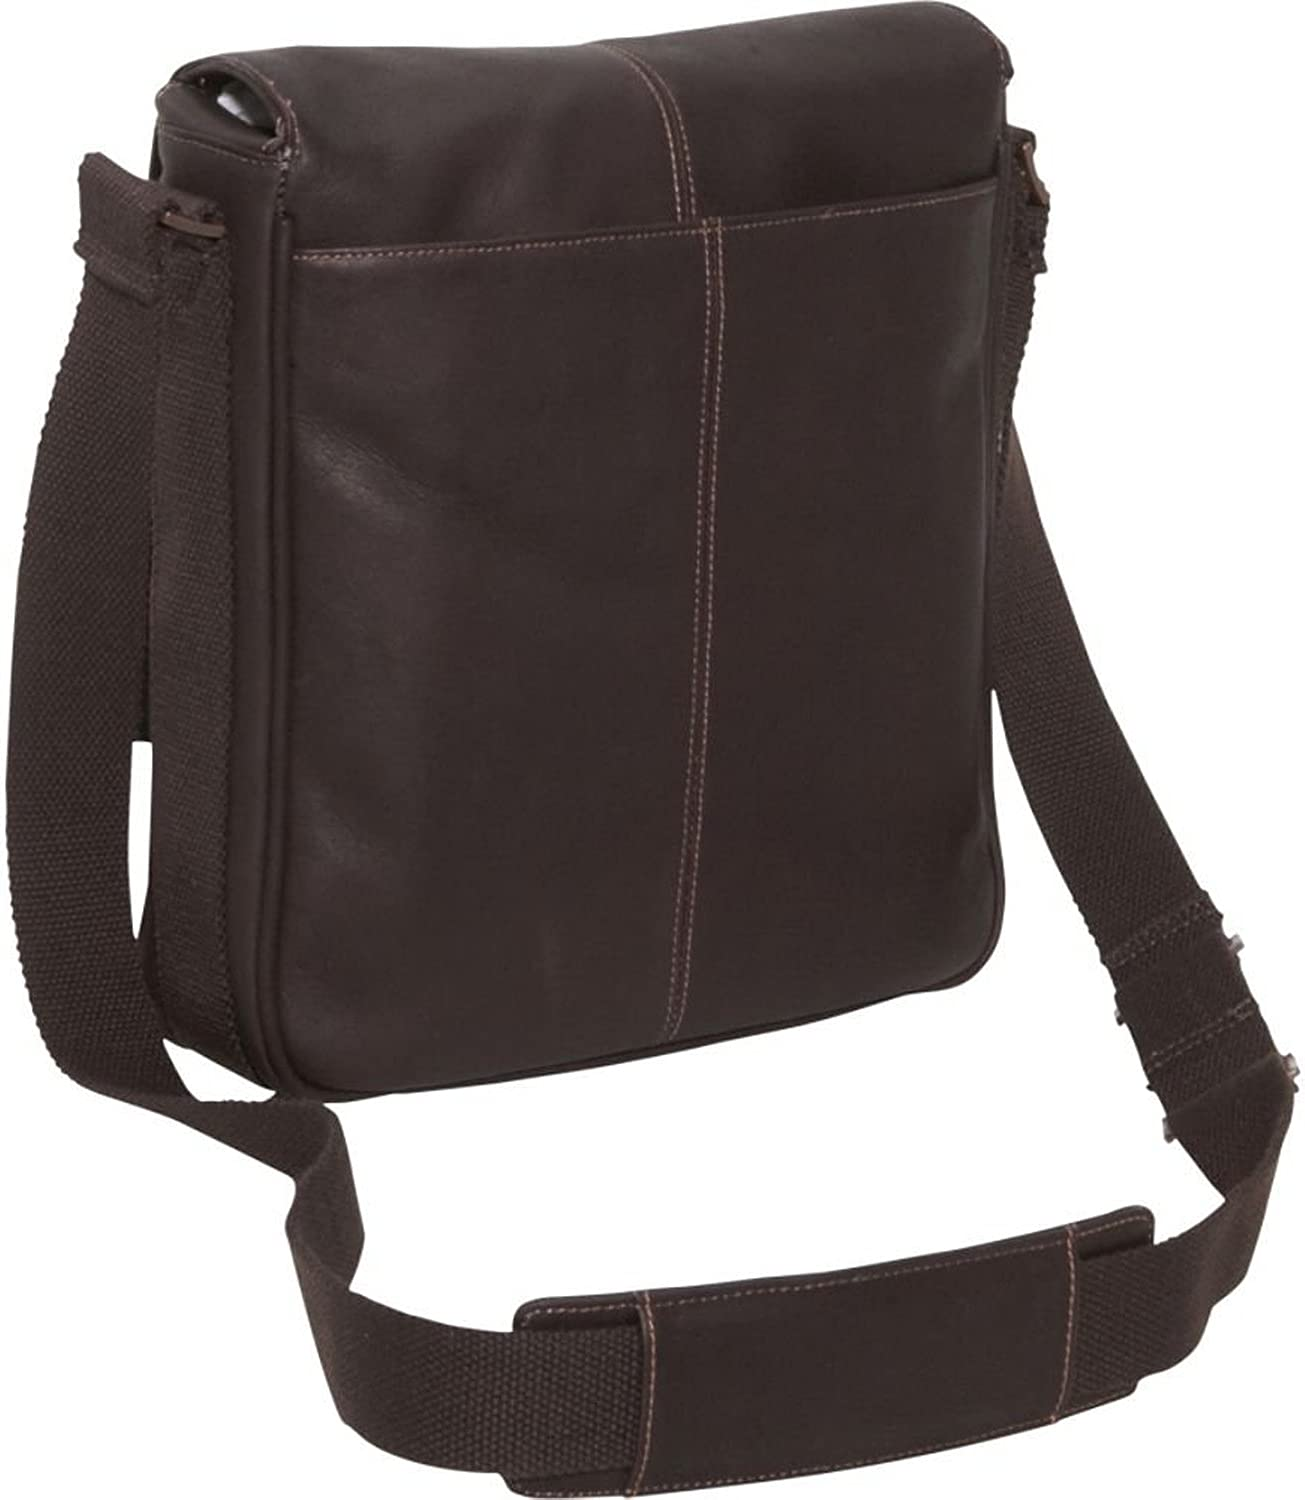 Kenneth Cole Reaction Colombian Leather A New Bag-inning Day Bag in Brown